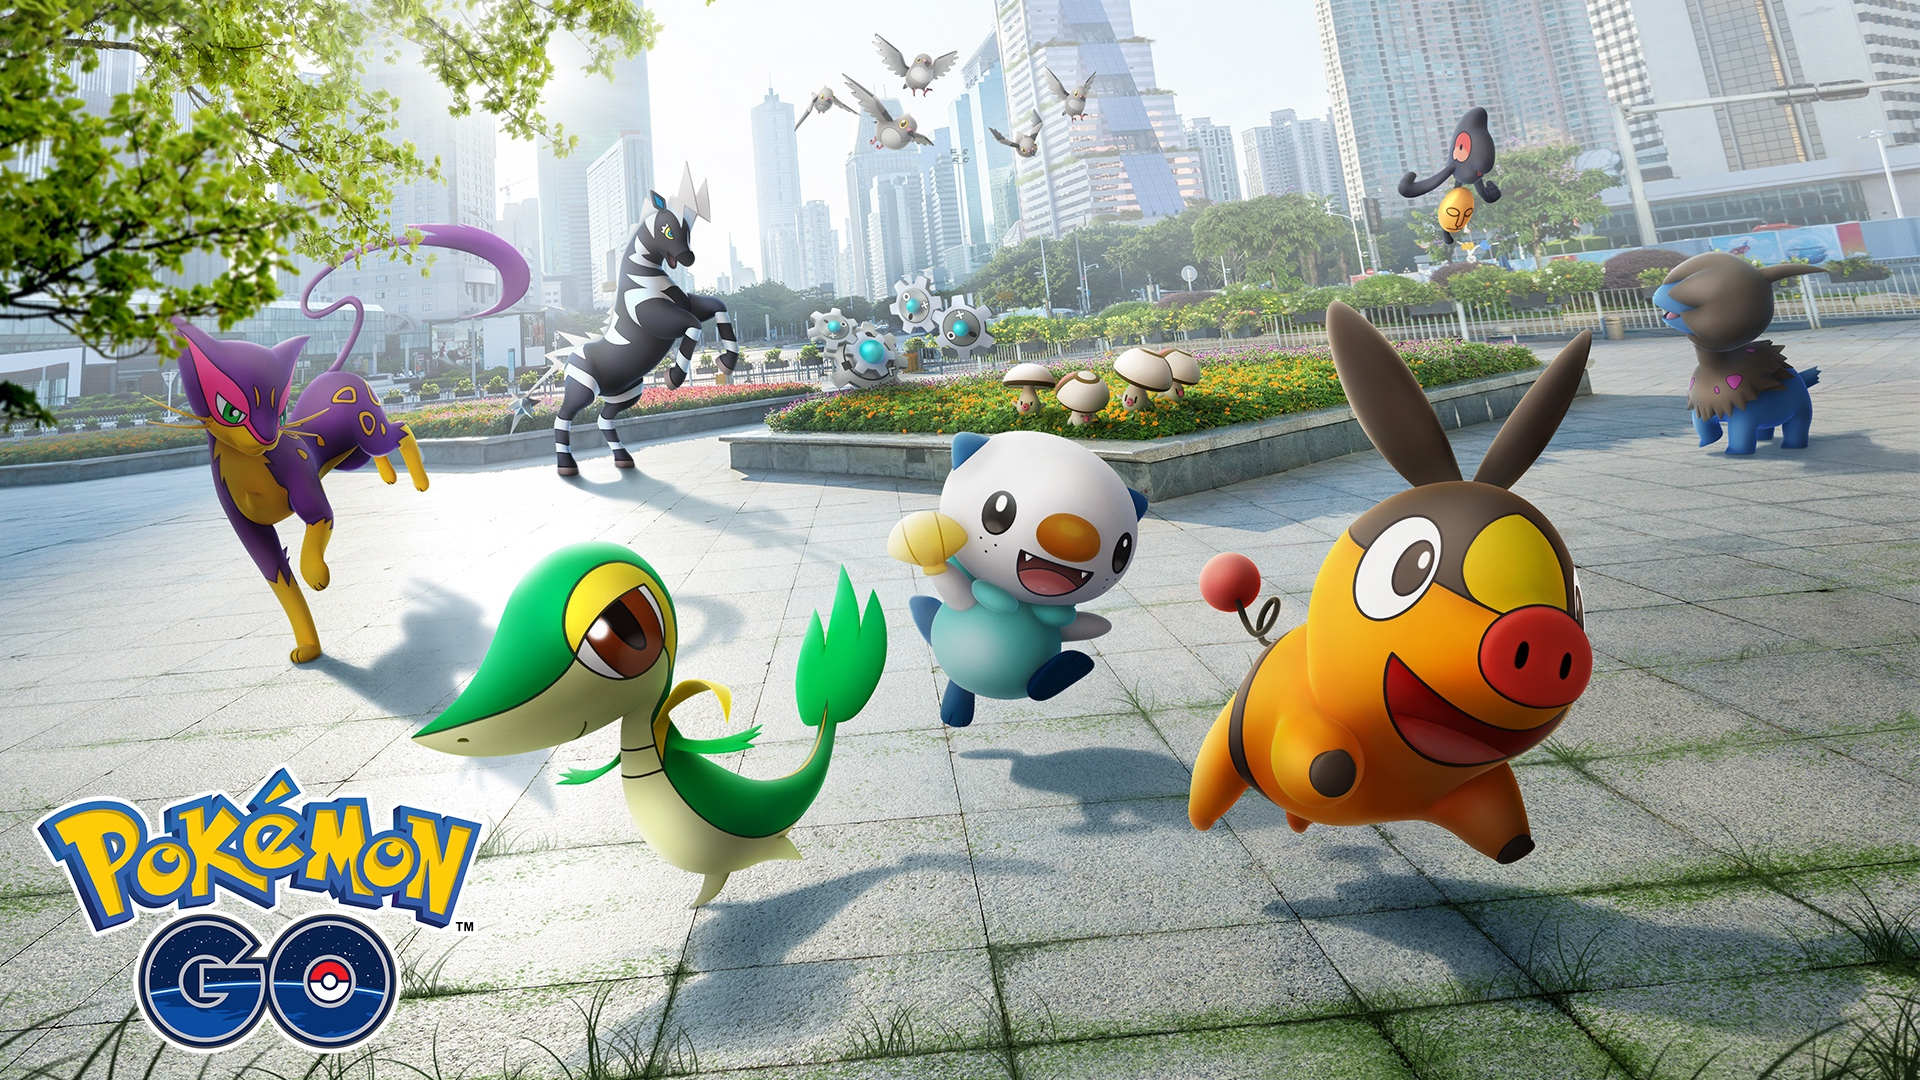 Poor Pokémon Go players have gone seven months without a spawn